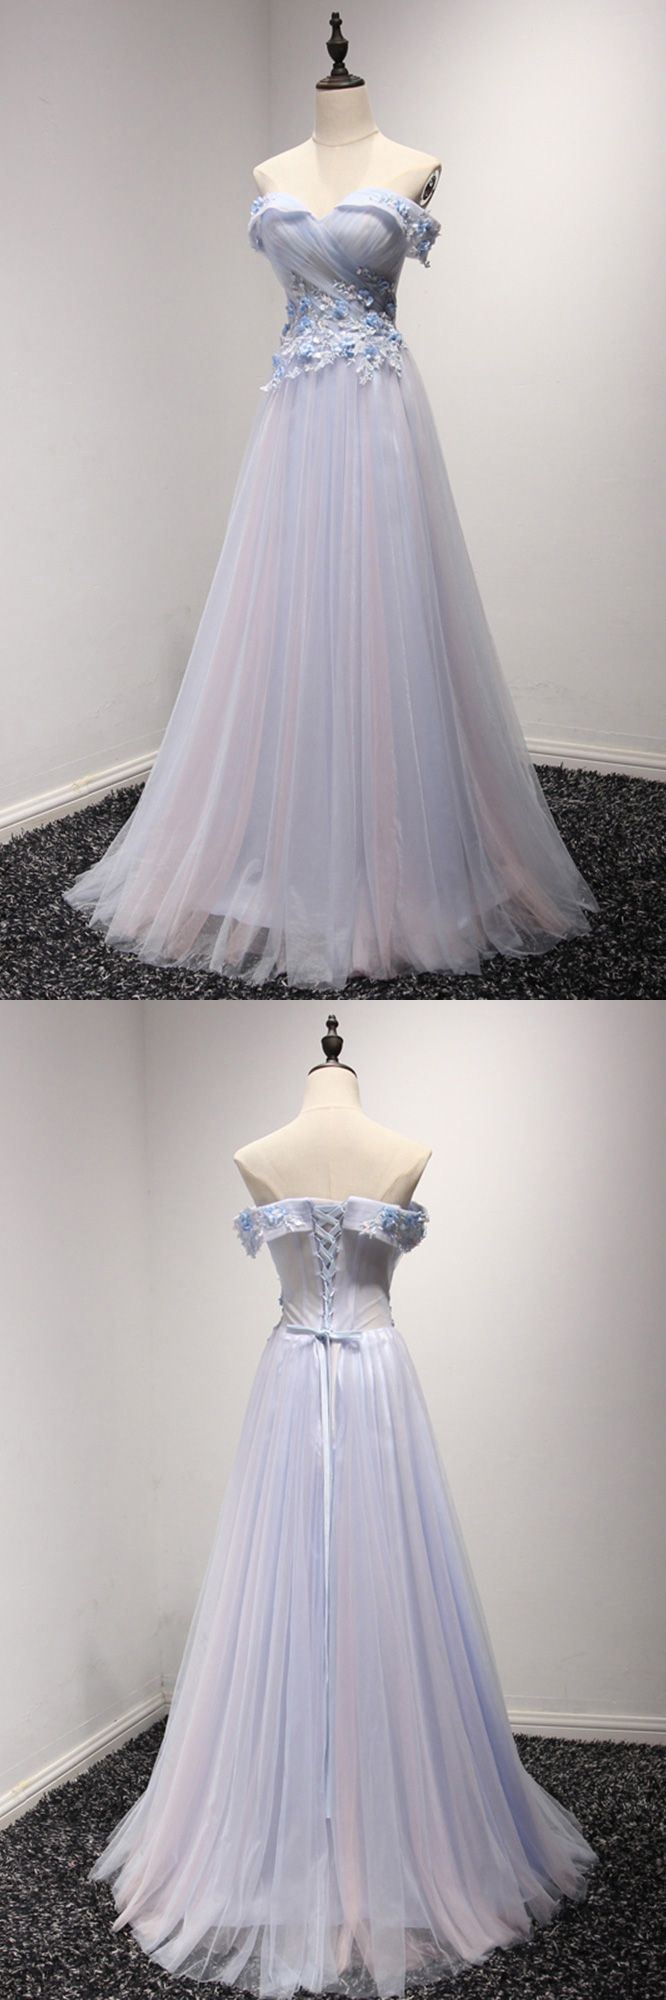 Only $149, Off The Shoulder Tulle Prom Dress Long In Two Tune Colors #AKE18004 at #SheProm. SheProm is an online store with thousands of dresses, range from Prom,Homecoming,Formal,Evening,Blue,A Line Dresses,Long Dresses,Off the Shoulder Dresses,Customizable Dresses and so on. Not only selling formal dresses, more and more trendy dress styles will be updated daily to our store. With low price and high quality guaranteed, you will definitely like shopping from us. Shop now to get $10 off!